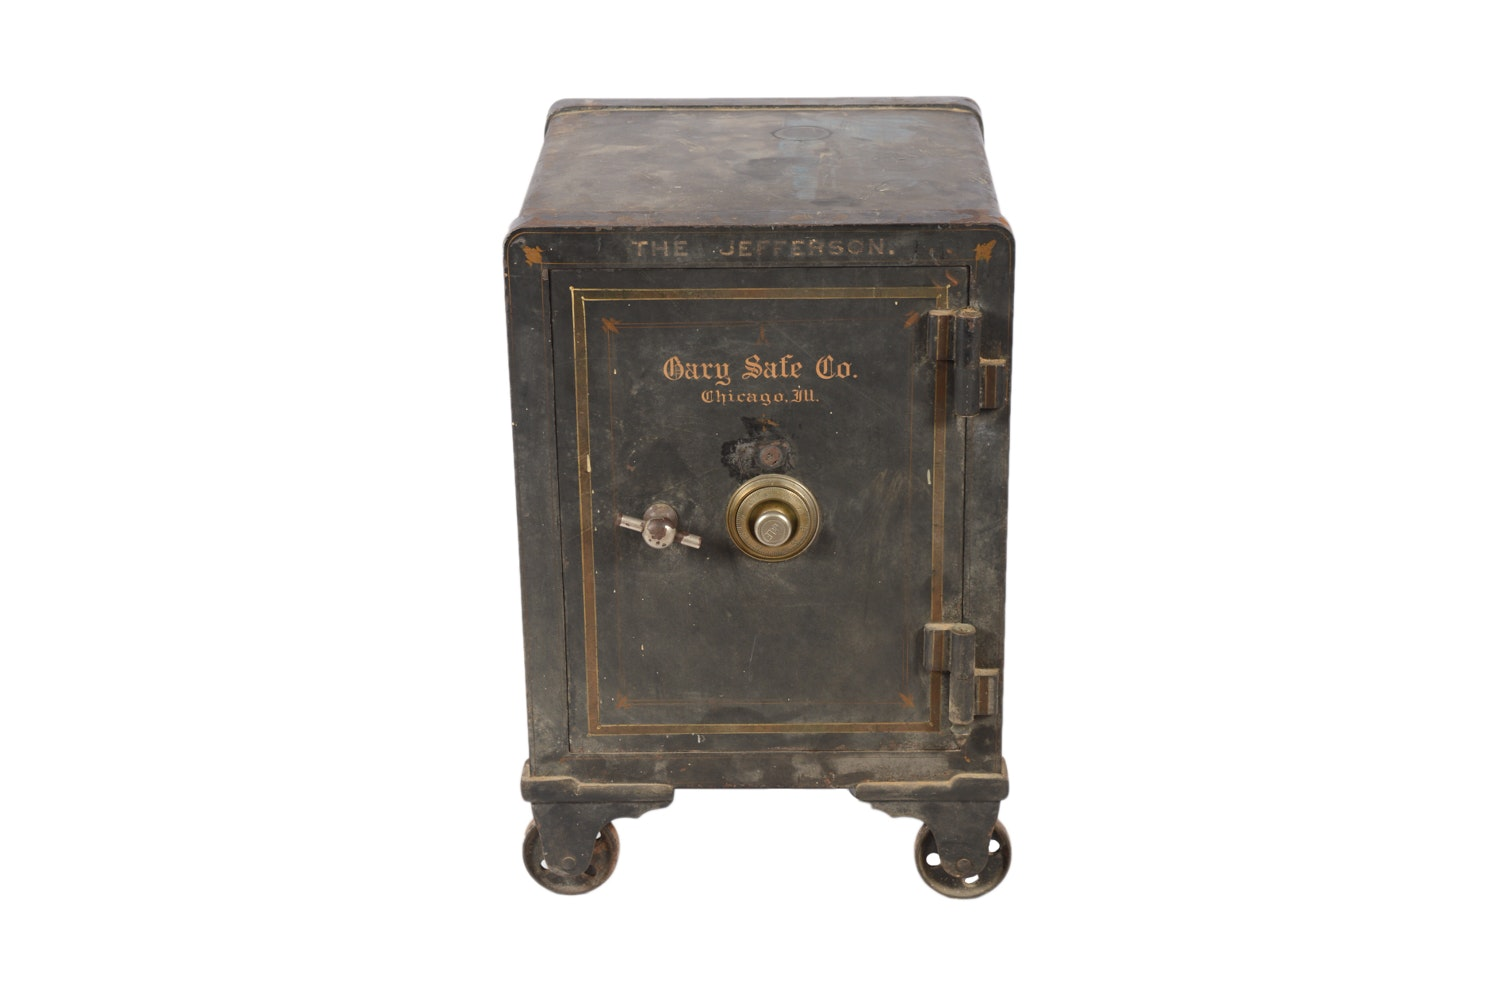 Late 1800s - Early 1900s Antique Cary Safe Co. of Chicago Safe with Castor Feet